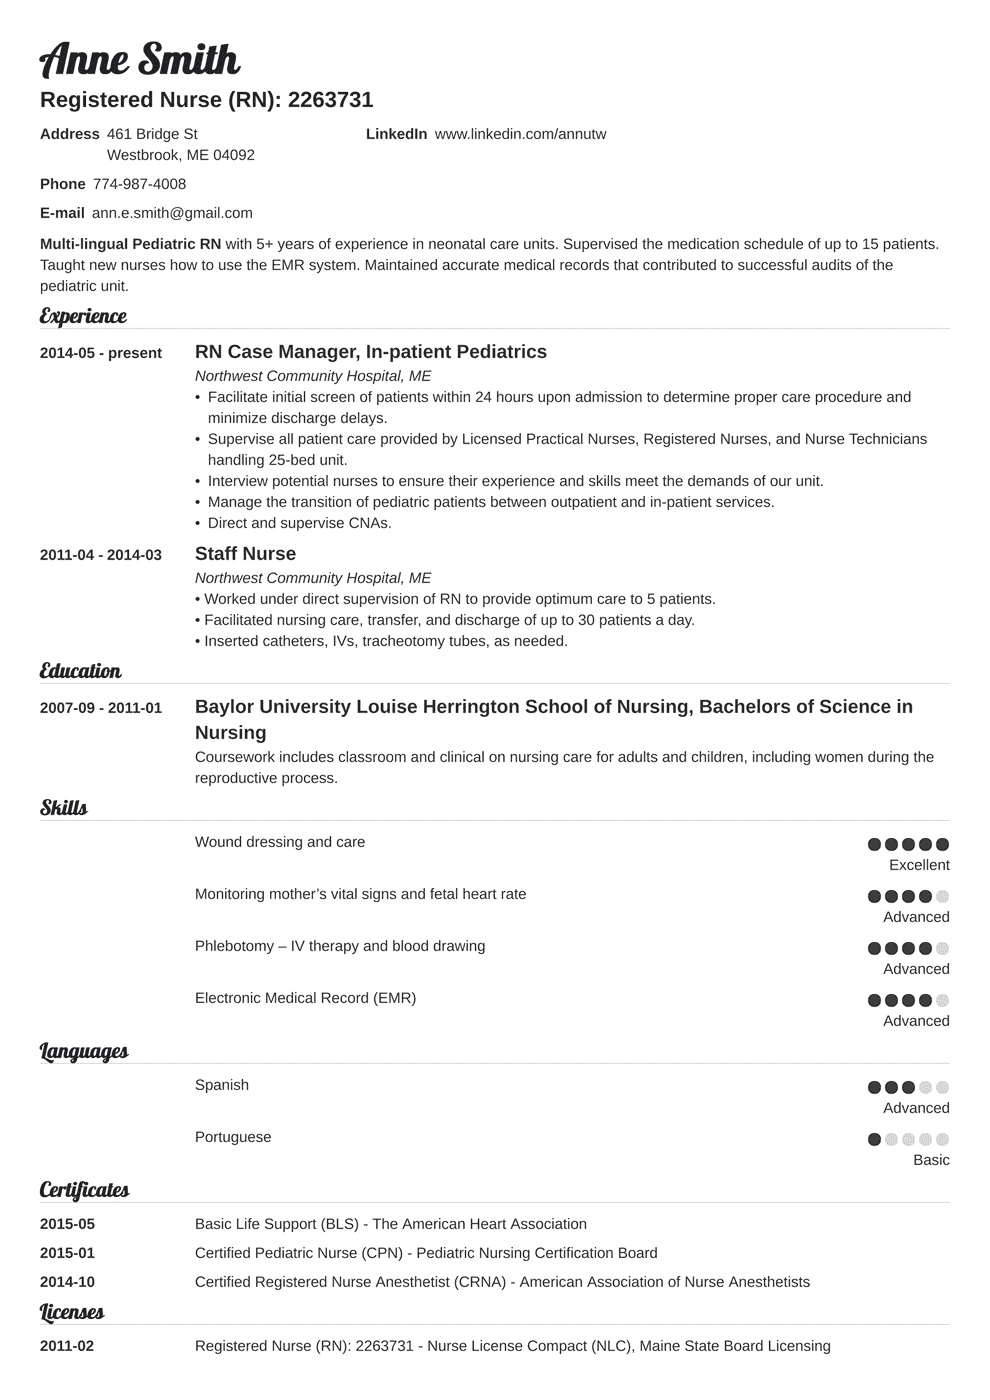 Professional Nursing Resume Template Nursing Resume Template Guide Examples Of Experience Skills